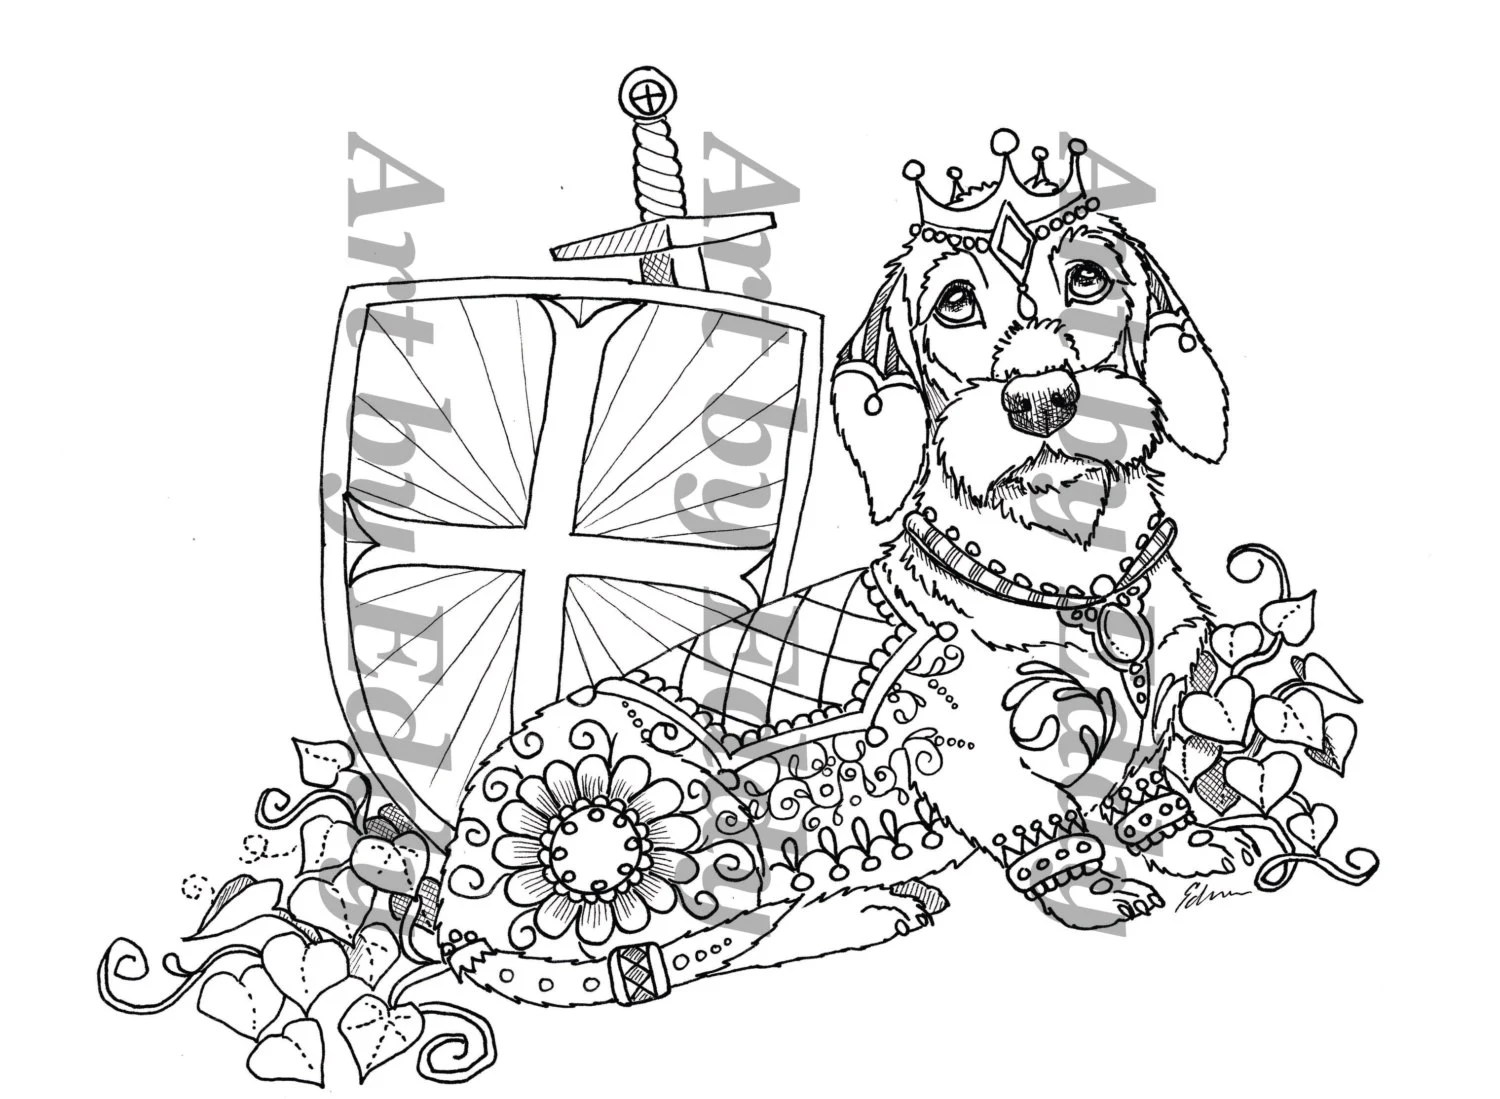 Art of Dachshund Coloring Book Volume No. 2 Physical by